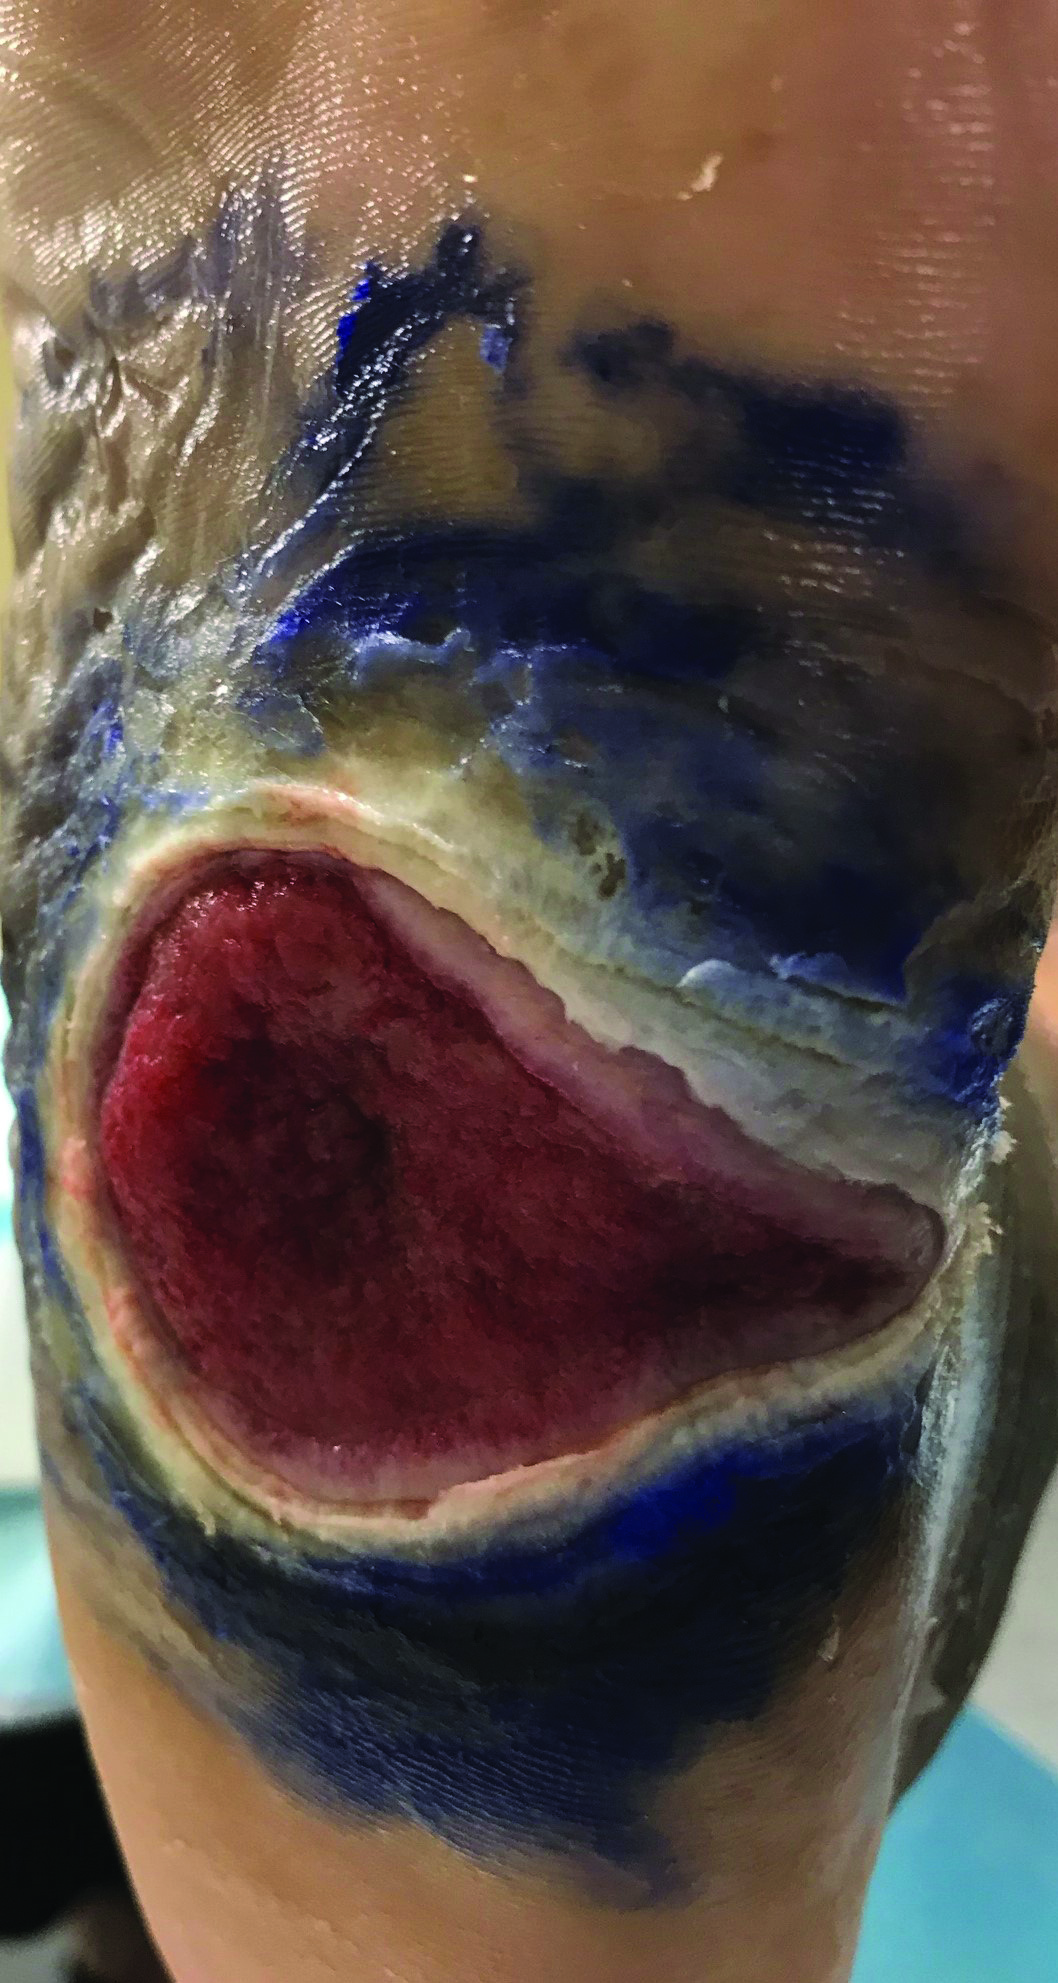 In the example seen here, the foam dressing extended beyond the wound bed, resulting in periwound maceration. The blue color surrounding the wound is from application of gentian violet solution.